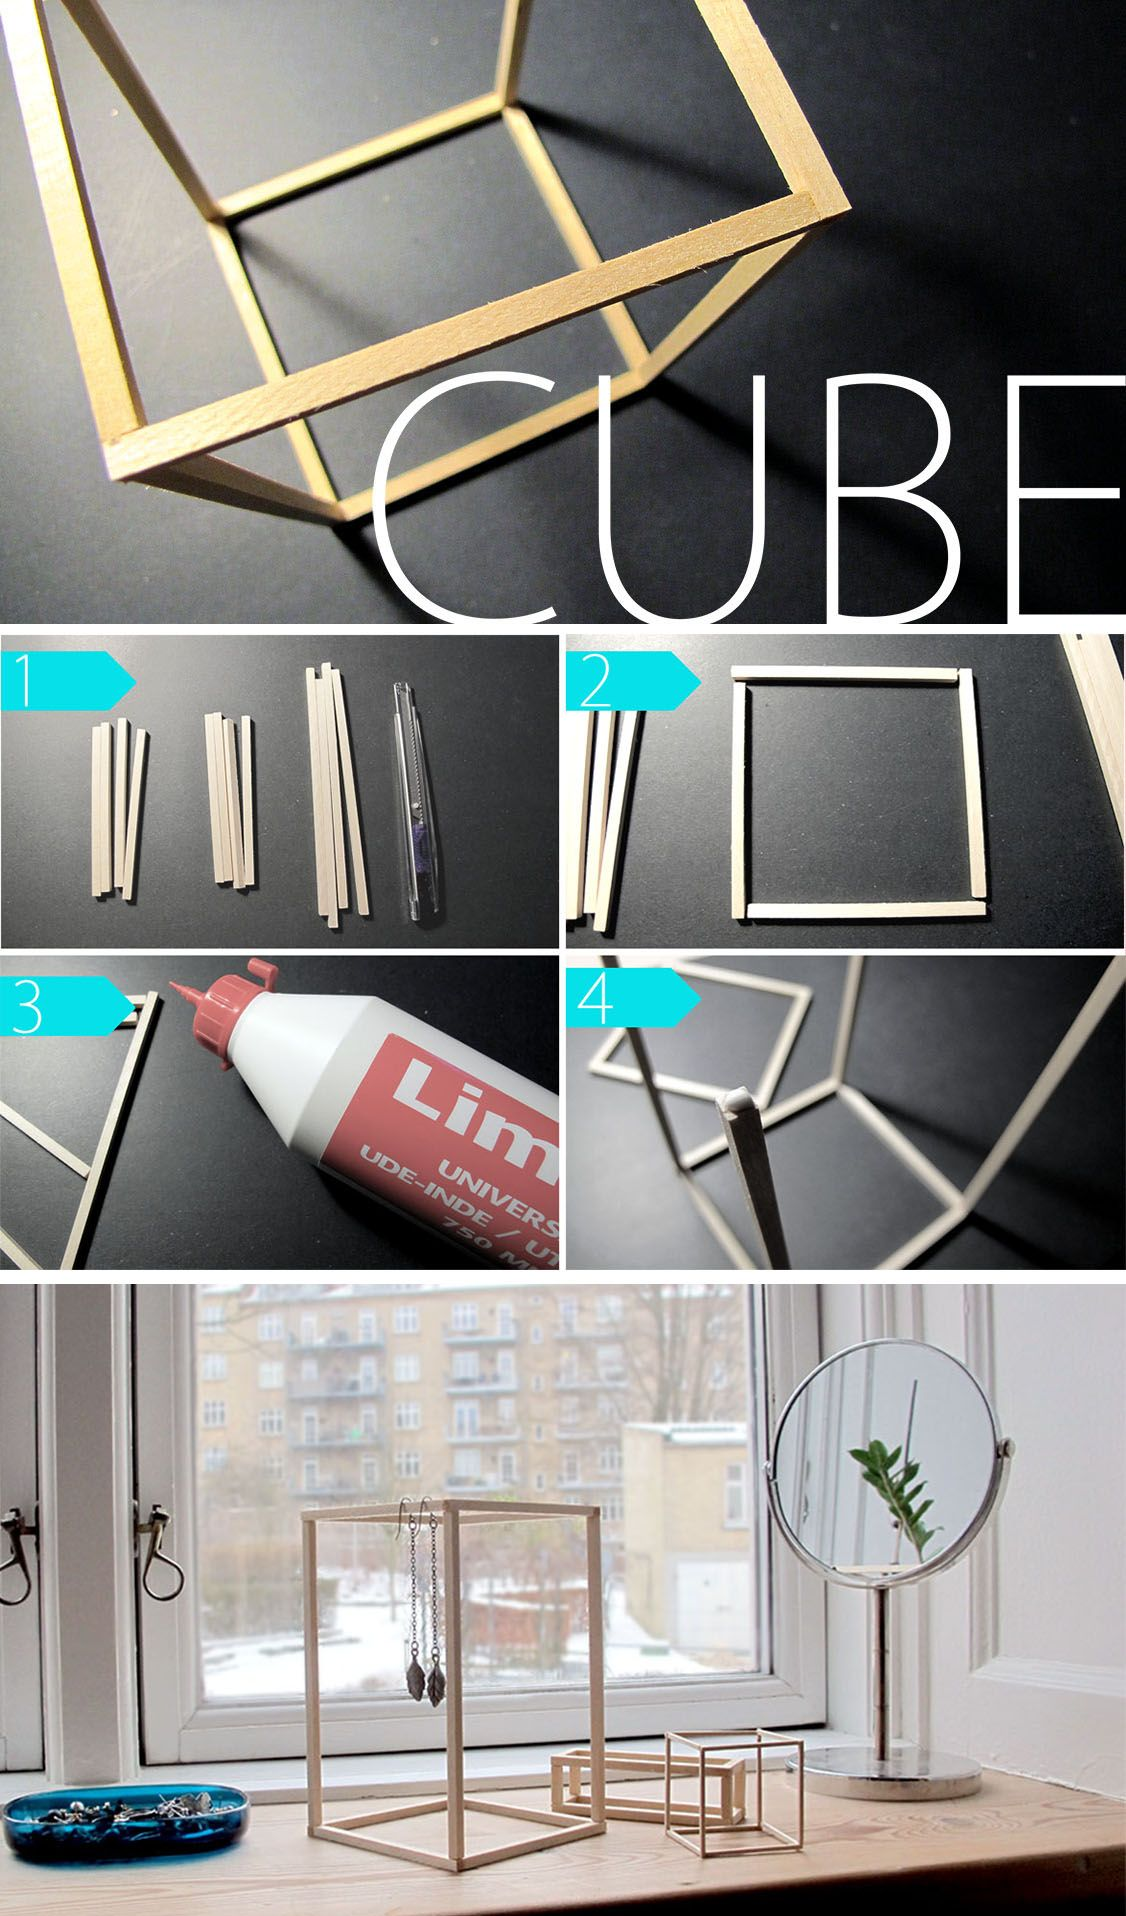 Jolie ide dco cube faire soi mme support bijoux diy make jolie ide dco cube faire soi mme support bijoux diy make diy jewelry standjewelry solutioingenieria Image collections